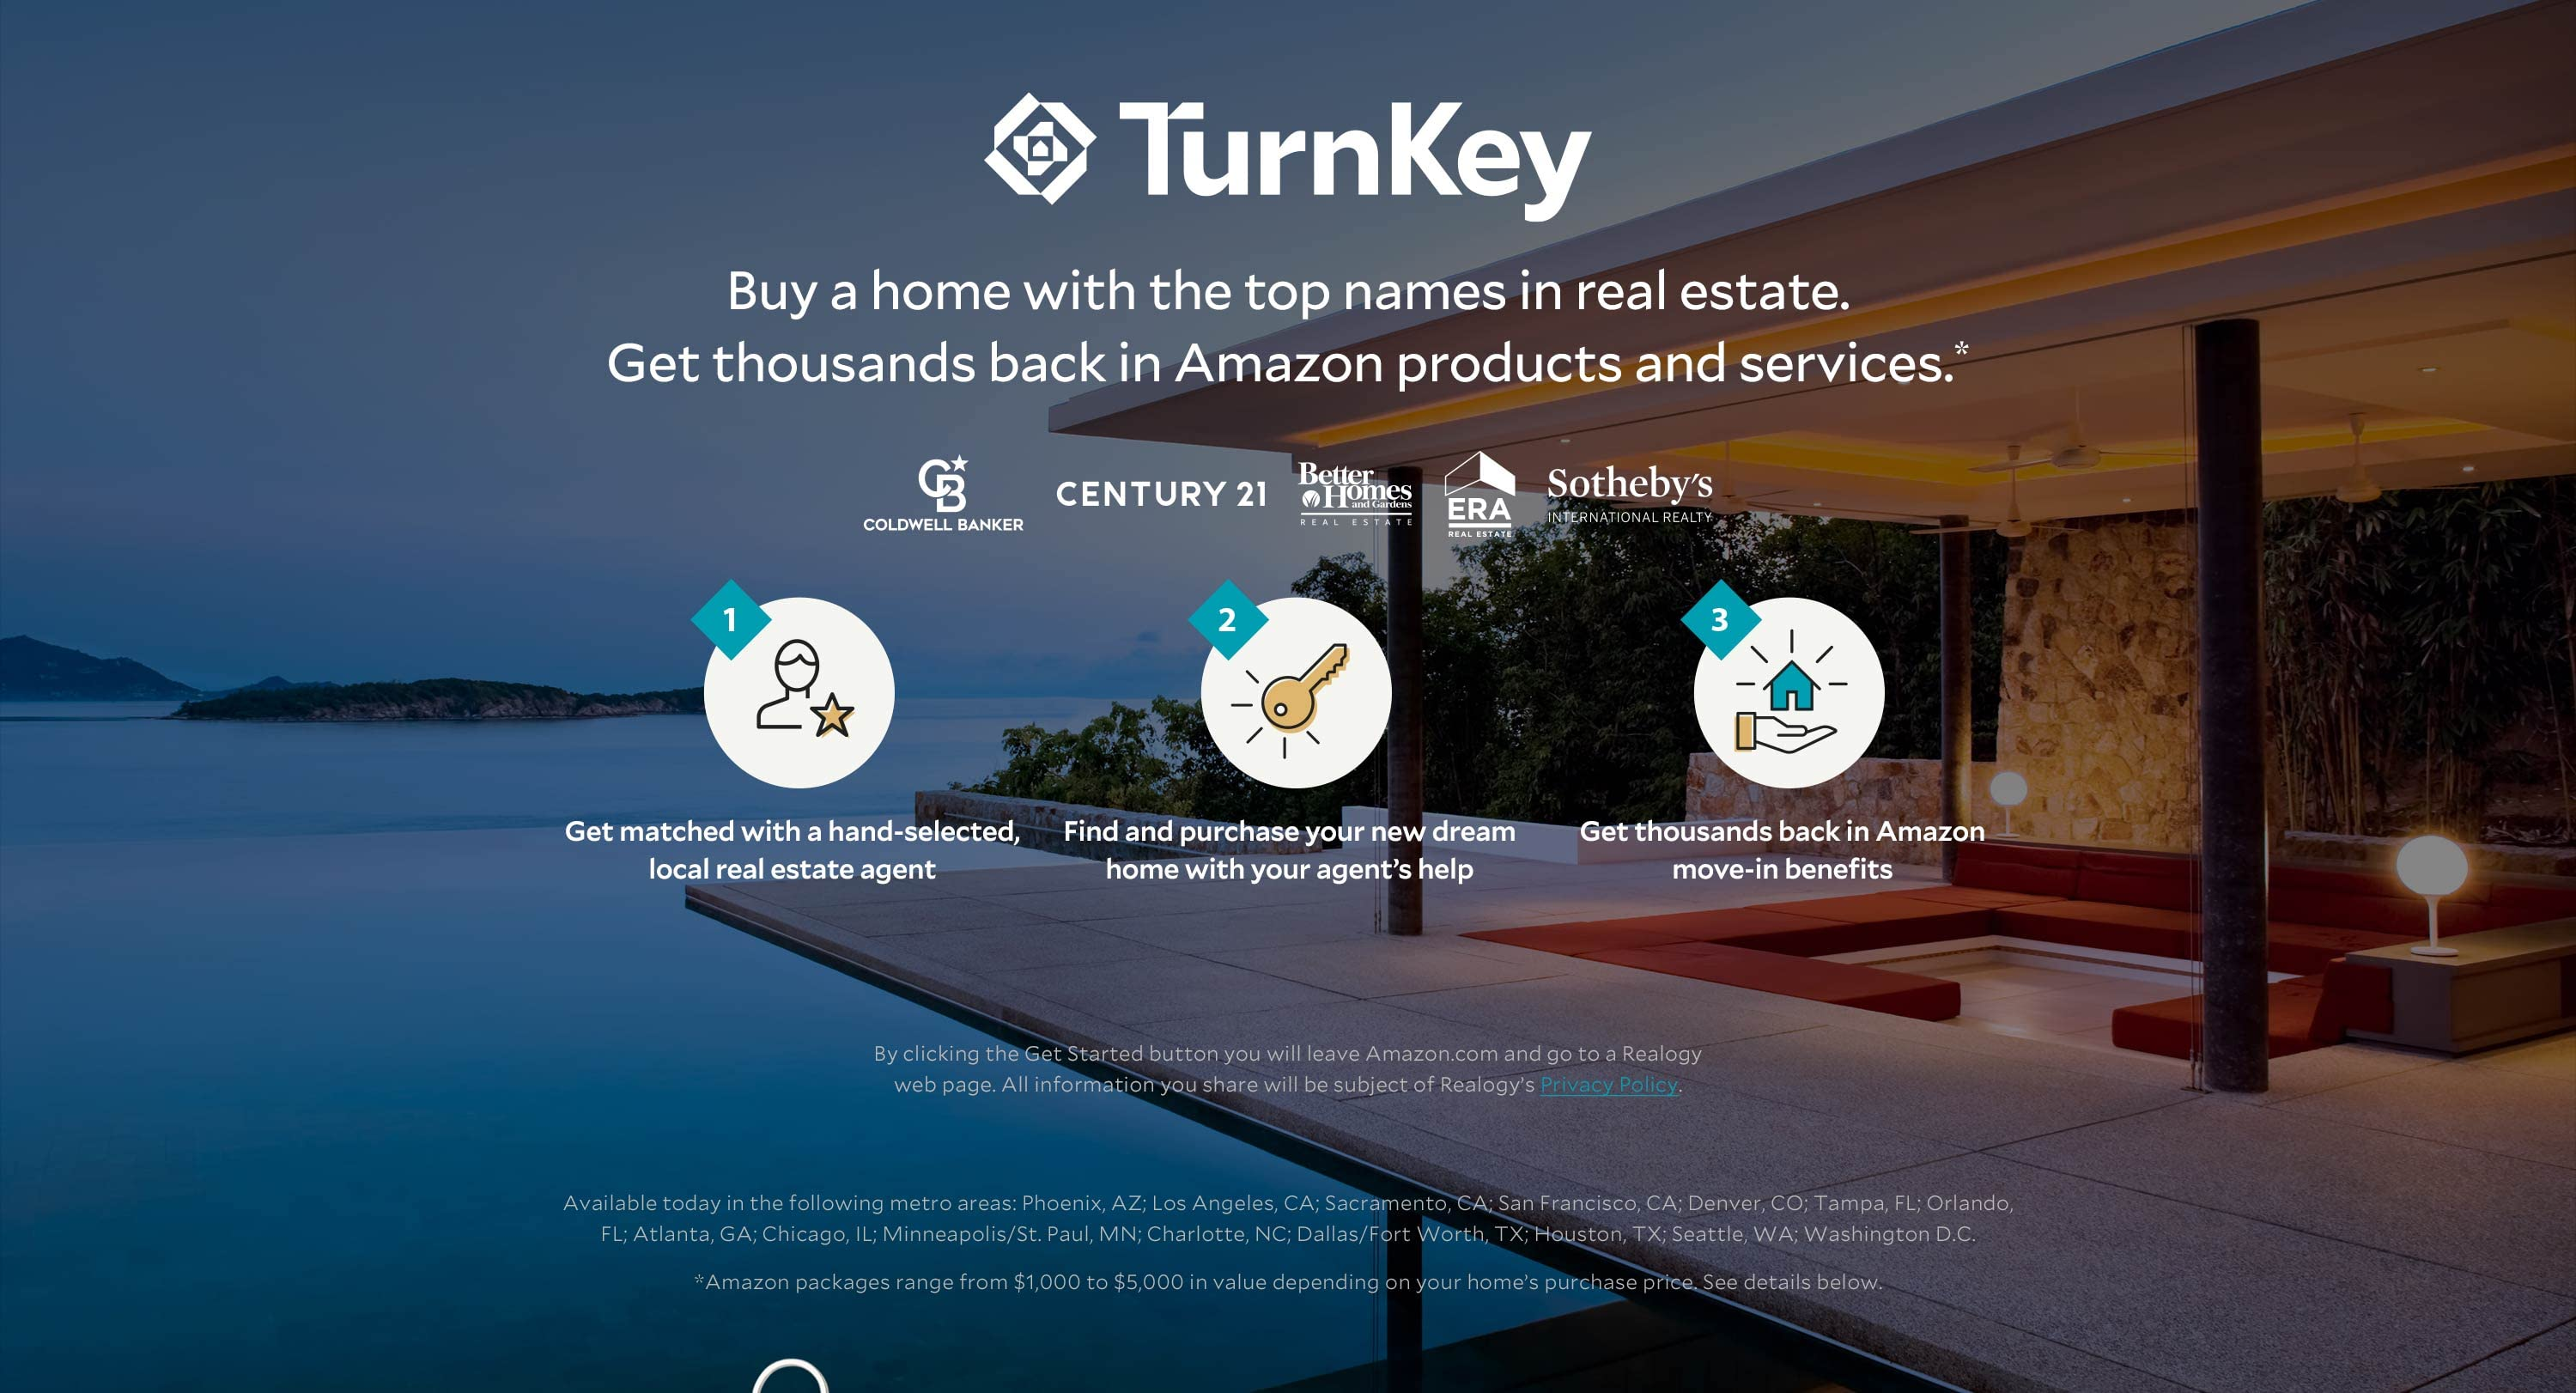 TurnKey. Buy a home with the top names in real estate. Get thousands back in Amazon products and services. Amazon packages range from $1,000 to $5,000 in value depending on your home's purchase price.   Available today in the following metro areas: Phoenix, AZ; Los Angeles, CA; Sacramento, CA; San Francisco, CA; Denver, CO; Tampa, FL; Orlando, FL; Atlanta, GA; Chicago, IL; Minneapolis/St. Paul, MN; Charlotte, NC; Dallas/Fort Worth, TX; Houston, TX; Seattle, WA; Washington D.C.